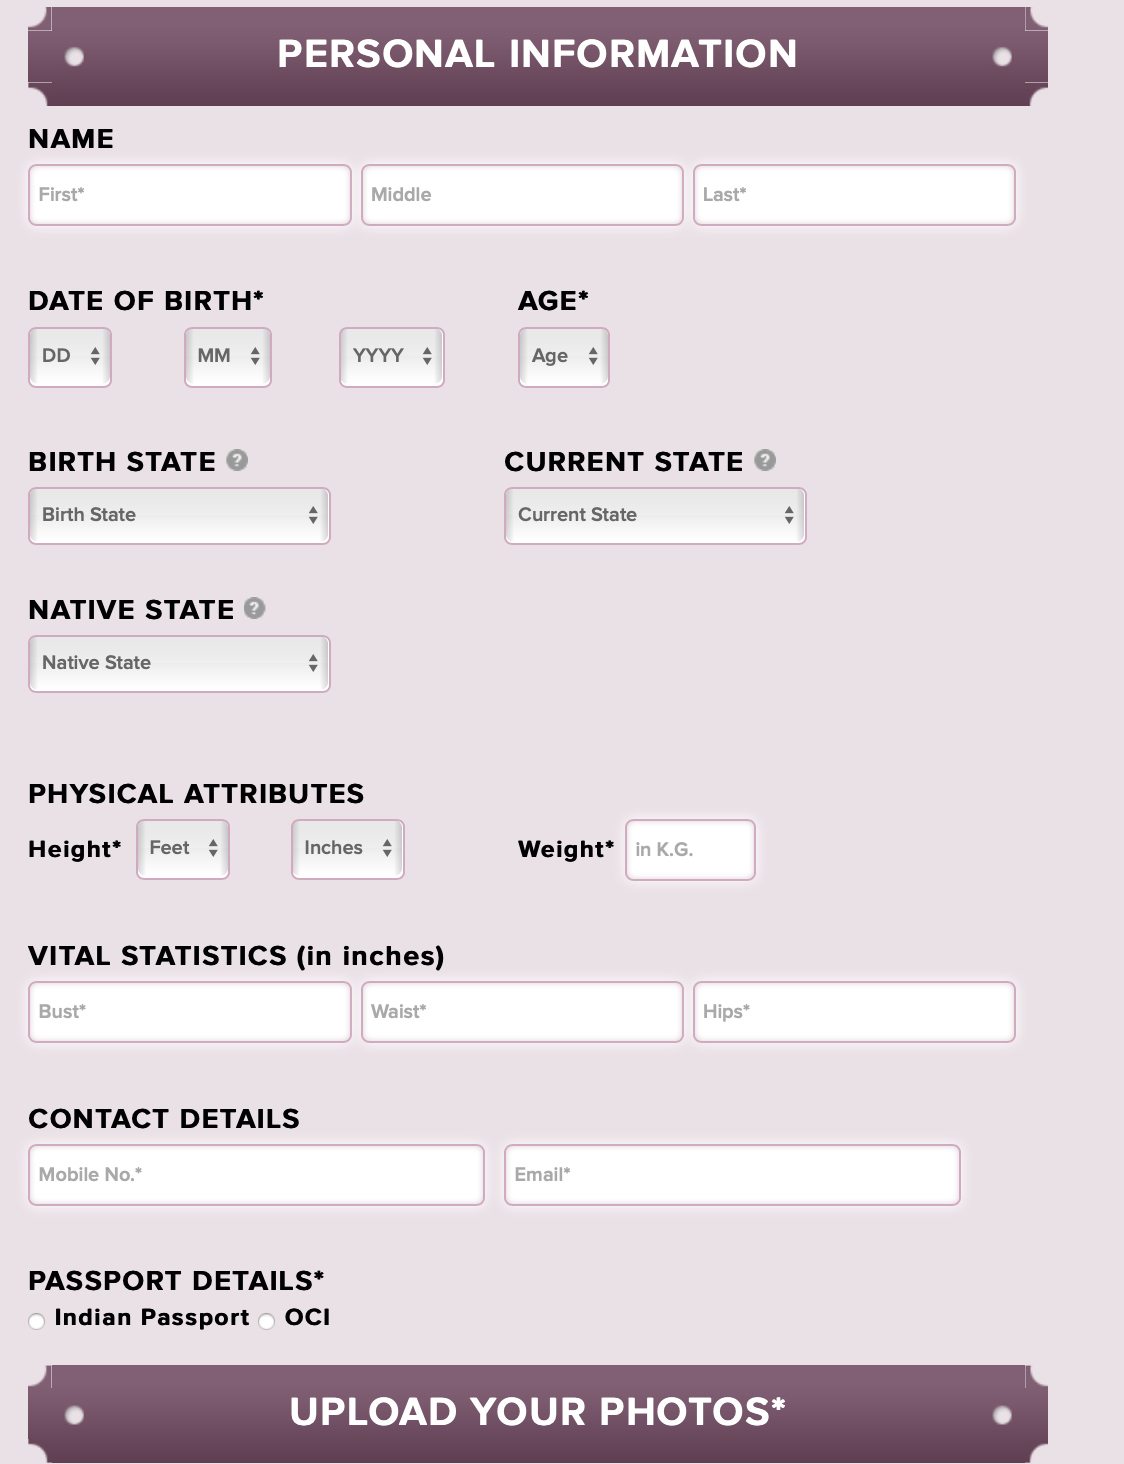 Miss India Application Form